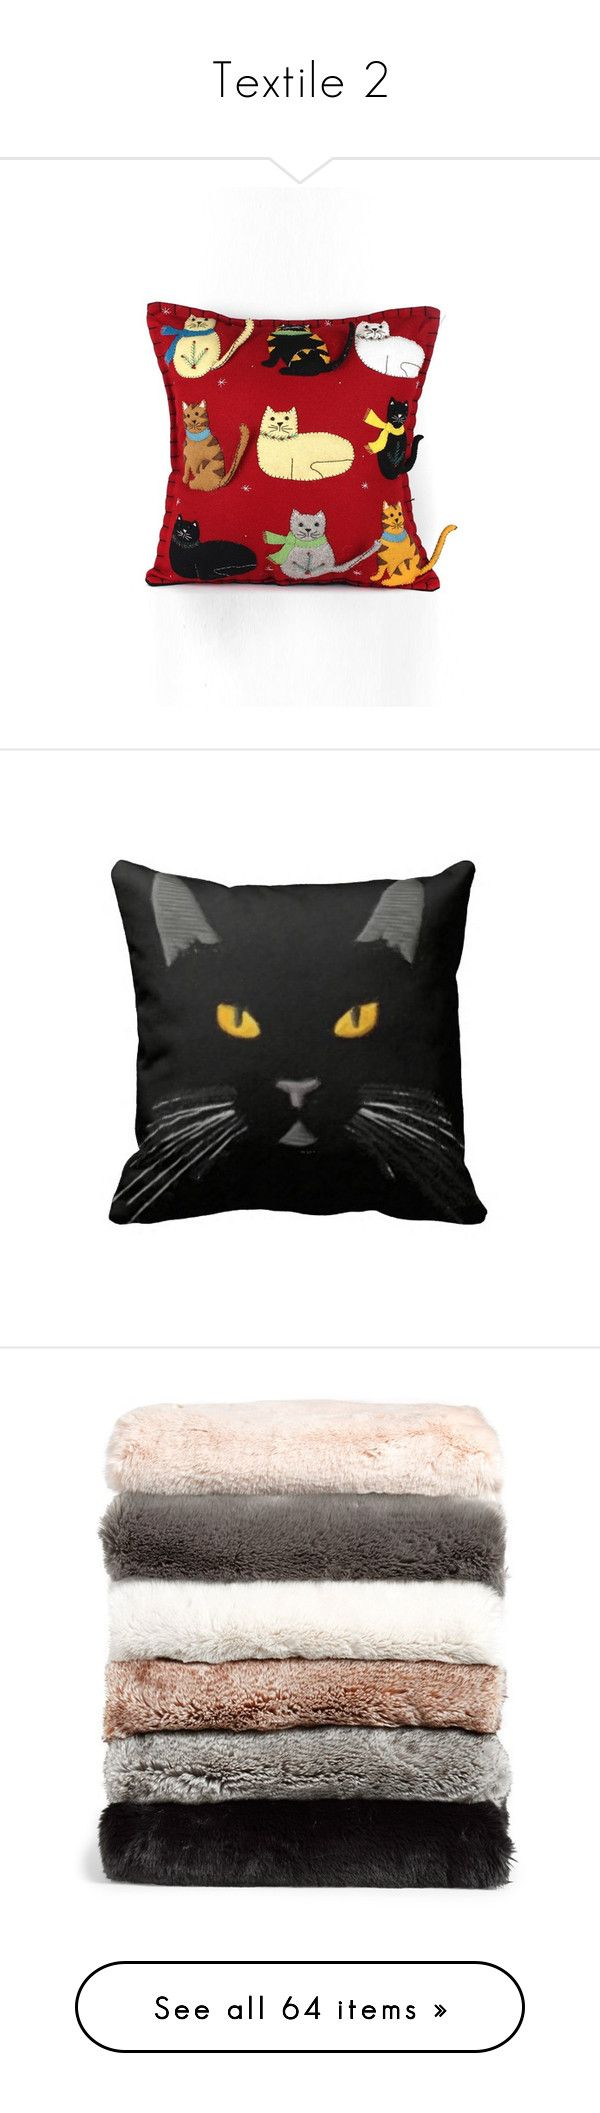 """Textile 2"" by michal100-15-4 ❤ liked on Polyvore featuring home, home decor, throw pillows, red, red throw pillows, cat home decor, red toss pillows, cat throw pillow, winter throw pillows and black home decor"